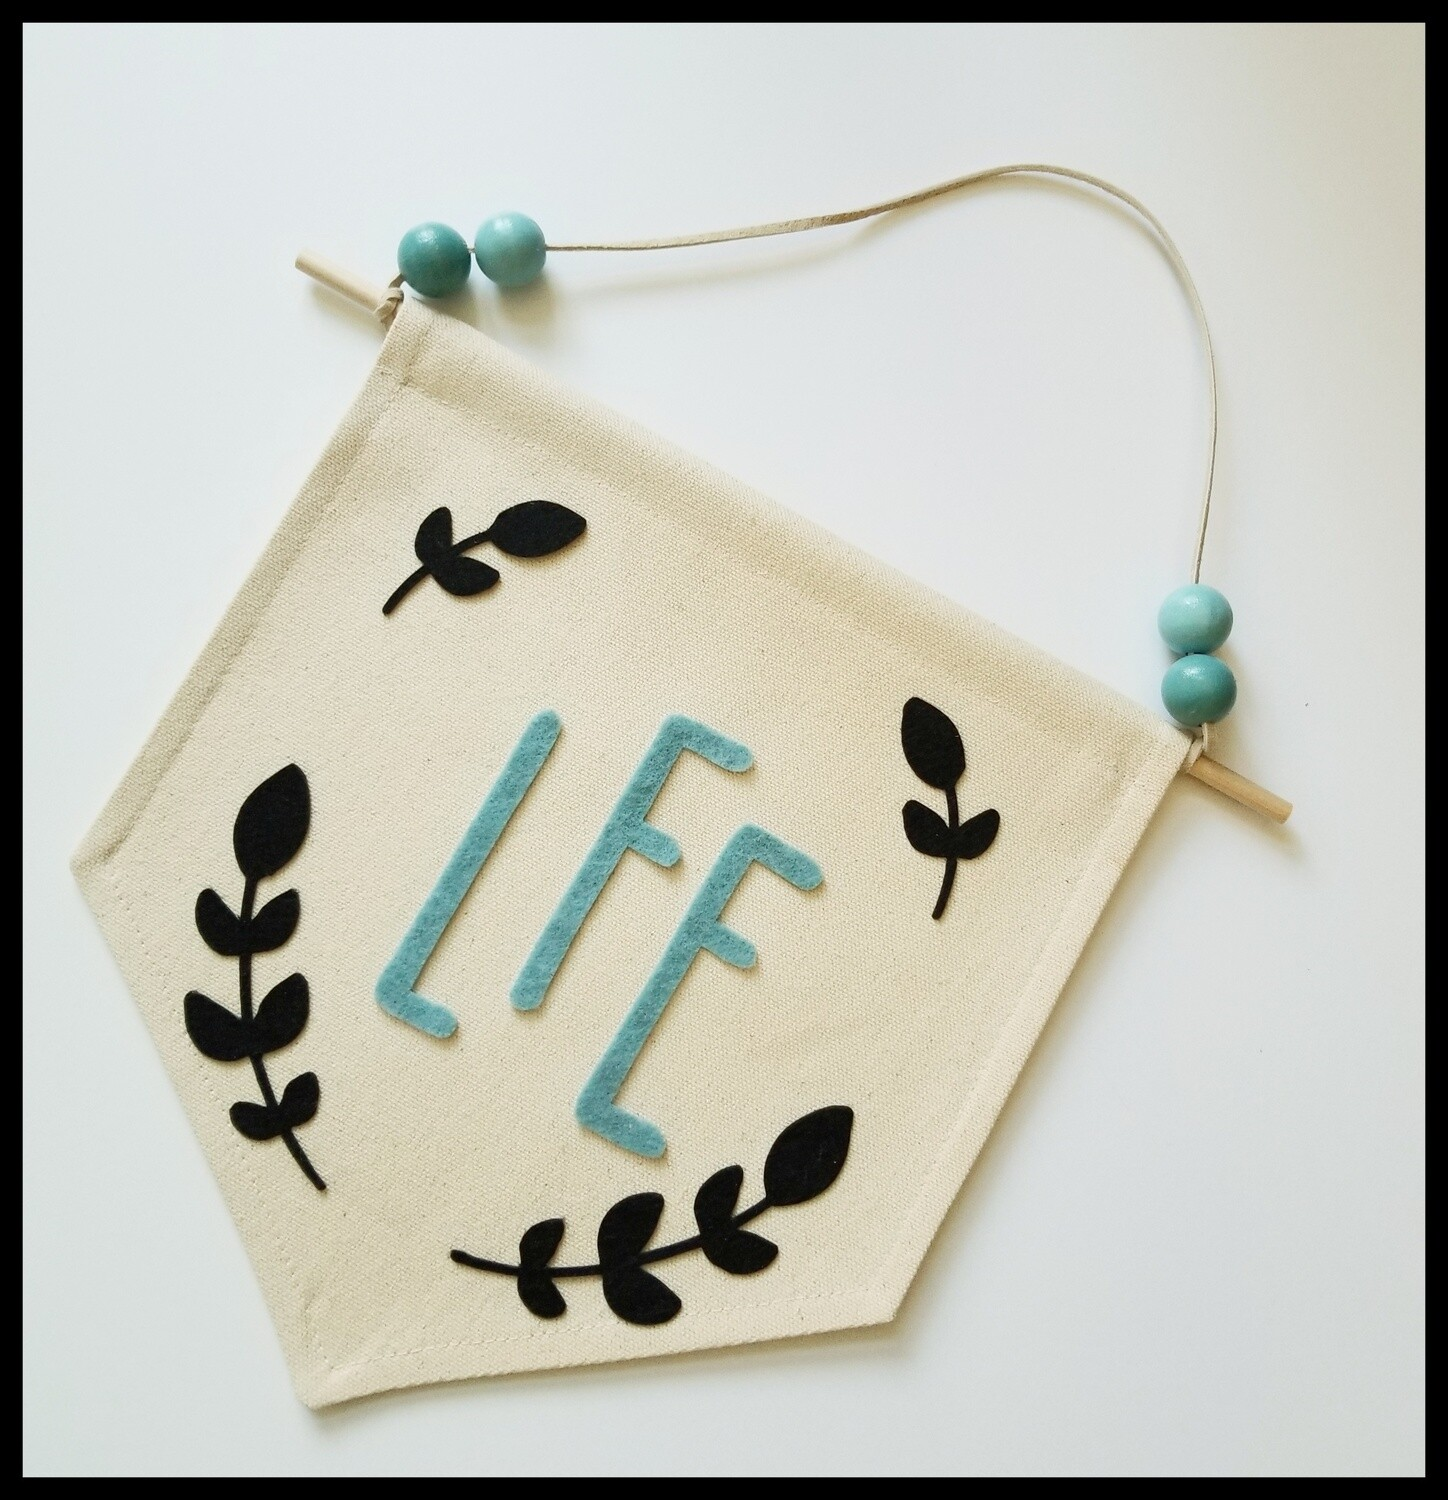 Monogram Wall Banner with Vine, Personalized Handmade Baby Gift, Canvas Wall Hanging with Felt Images, Nursery Decor, Baby Gift, FREE SHIPPING